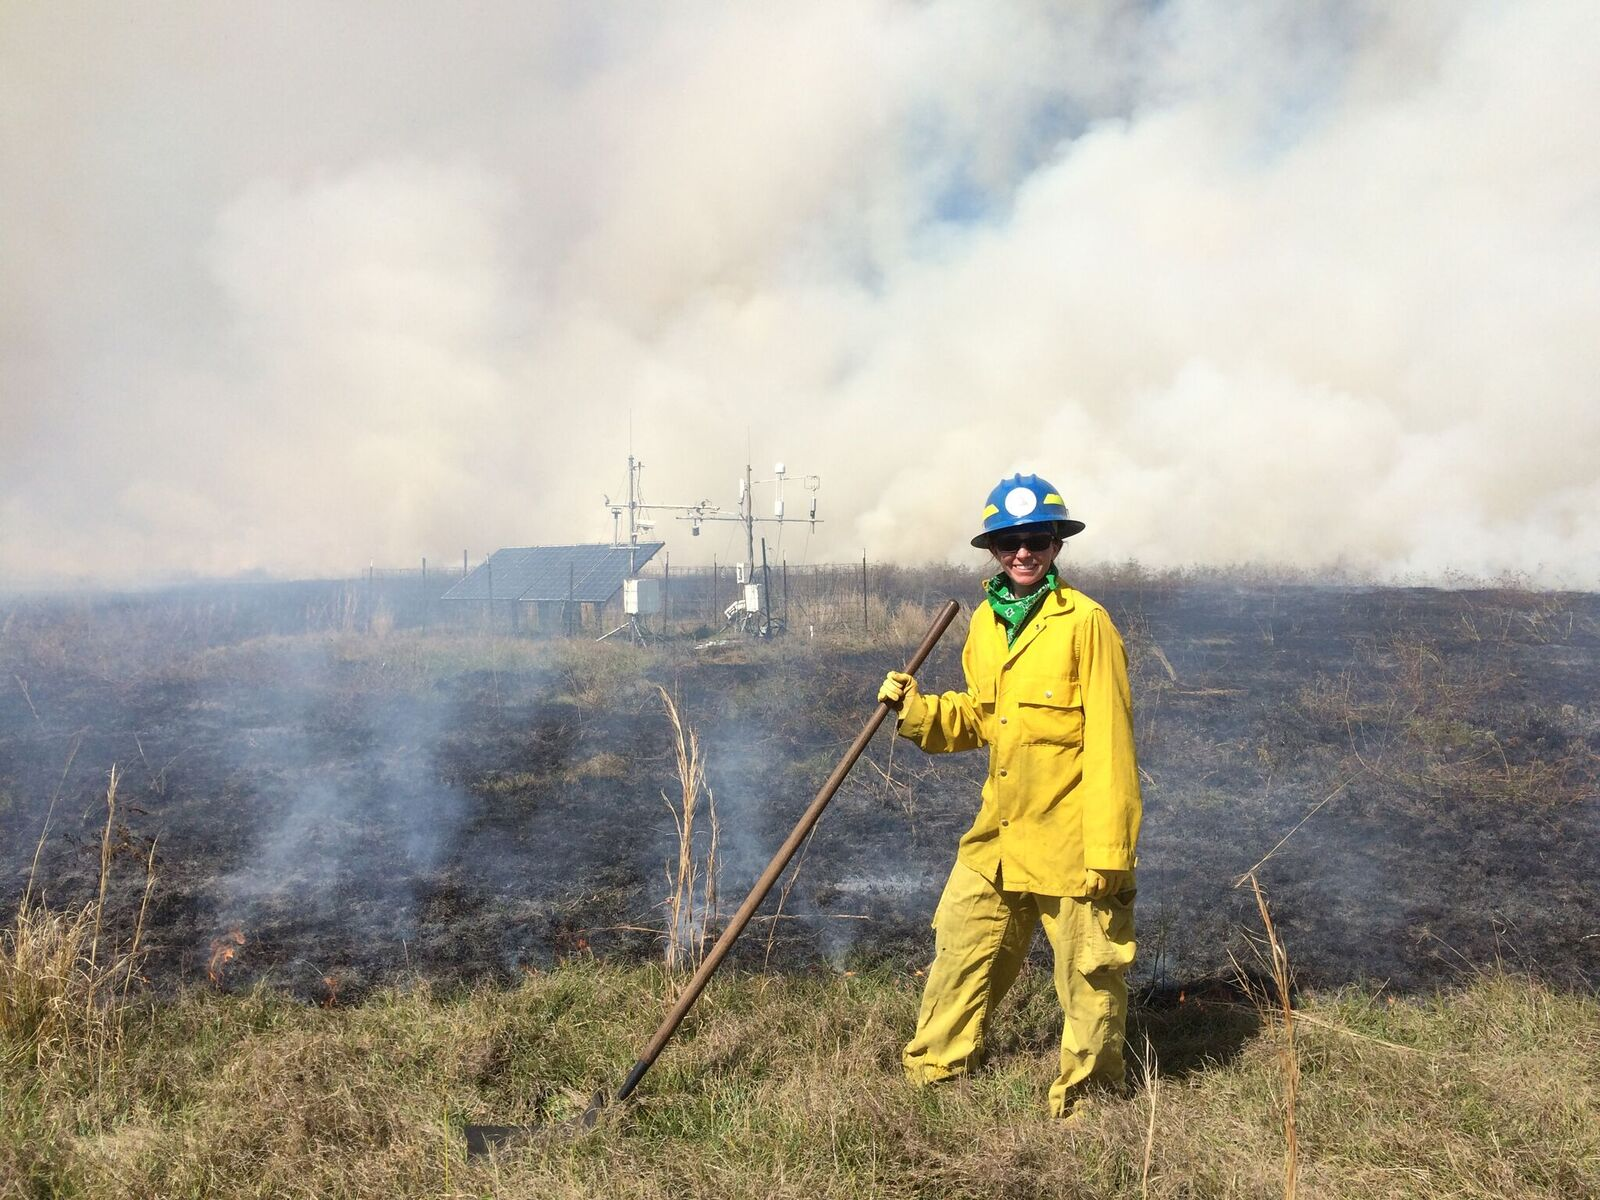 A pasture burn with an Eddy Flux tower in the background